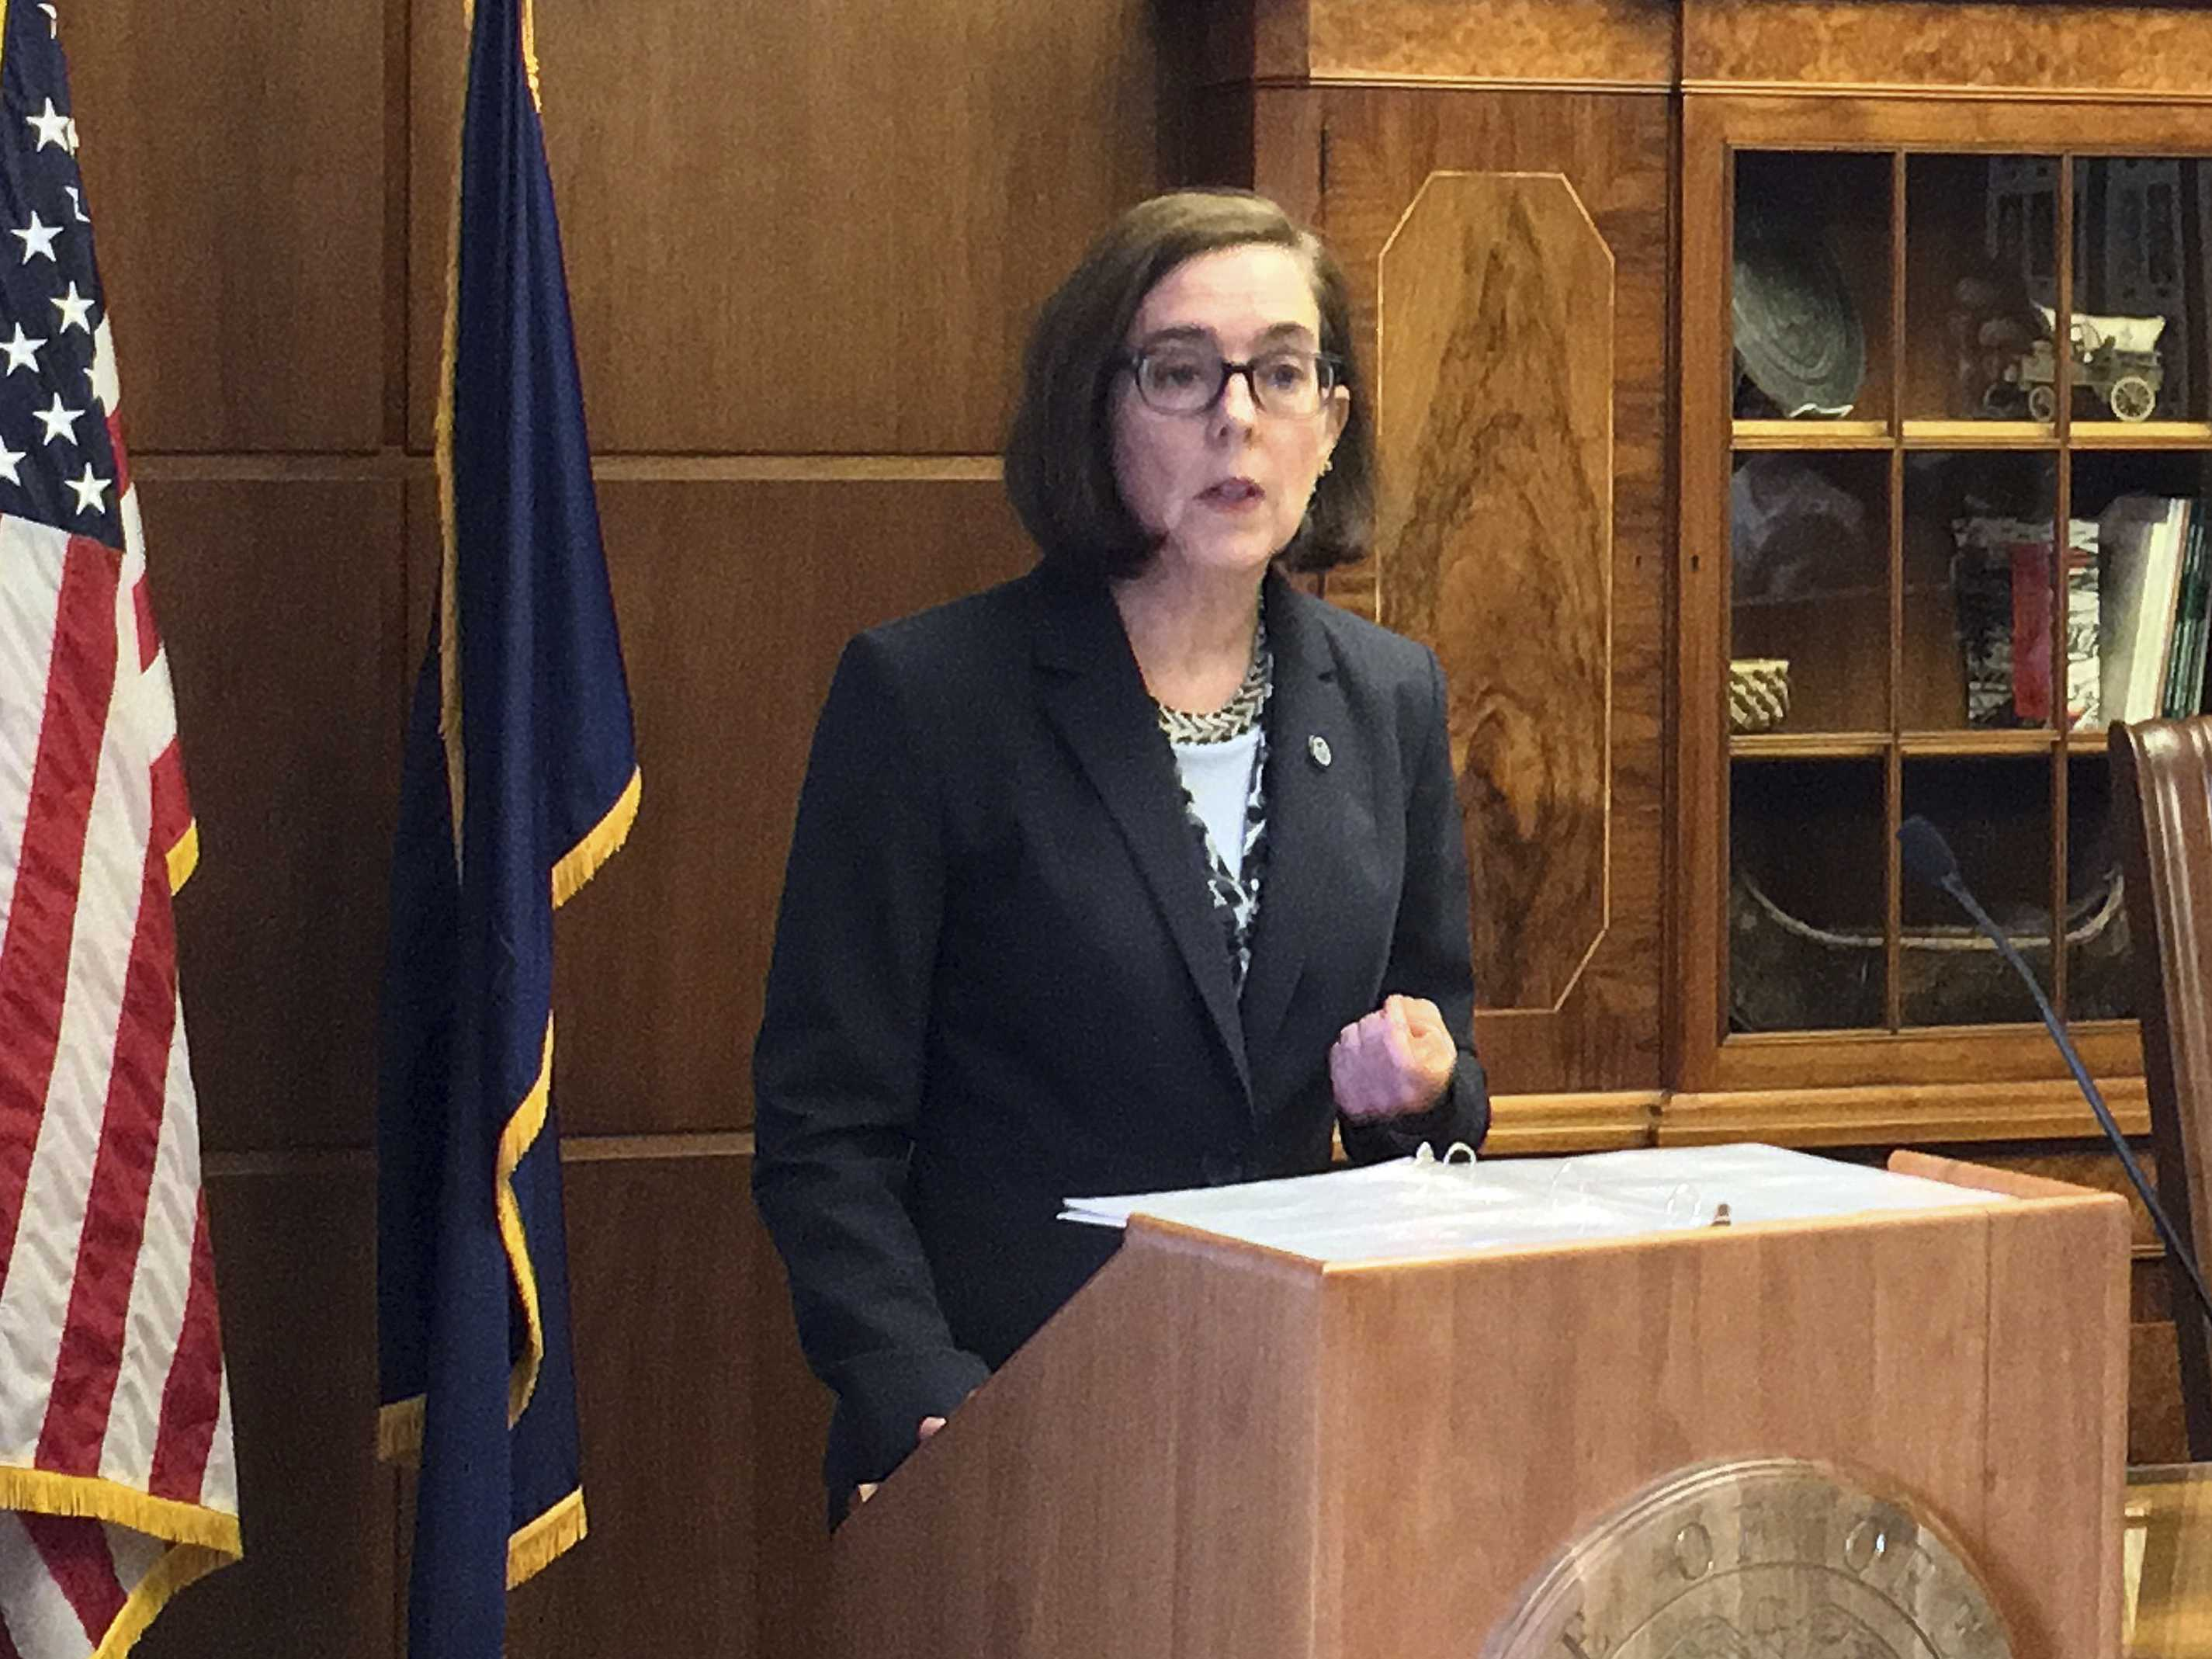 Oregon Governor Expands Abortion, Reproductive Coverage